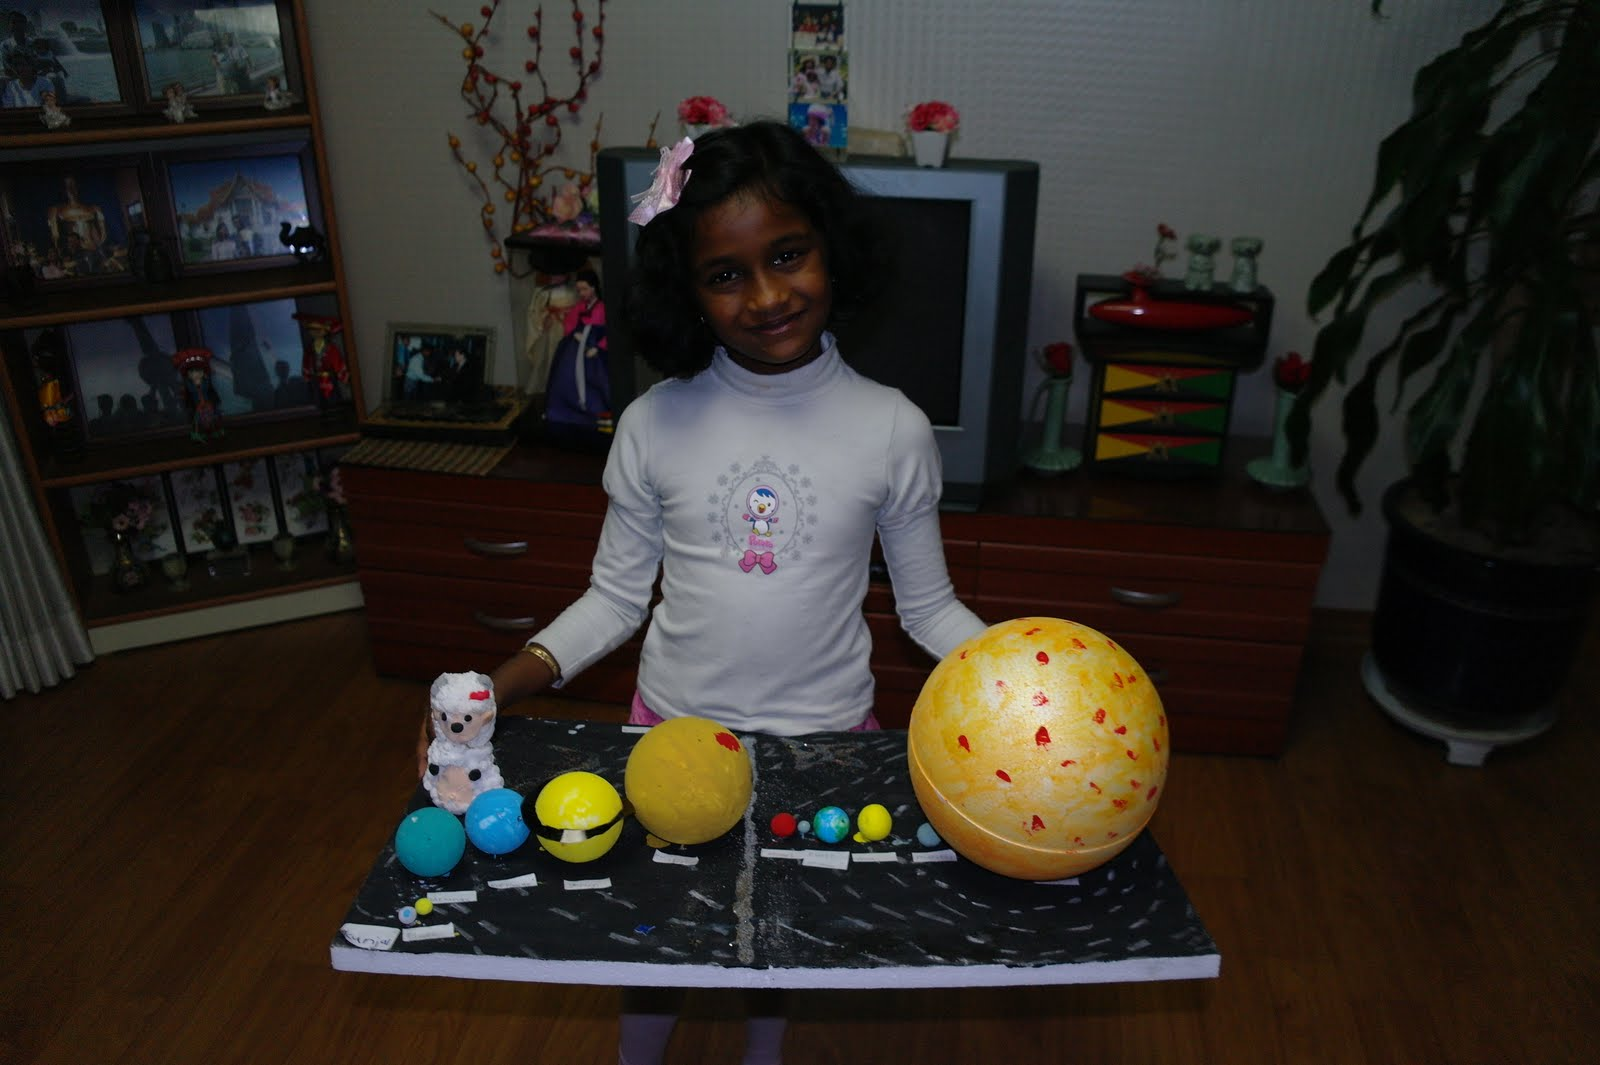 a solar system made of clay - photo #22